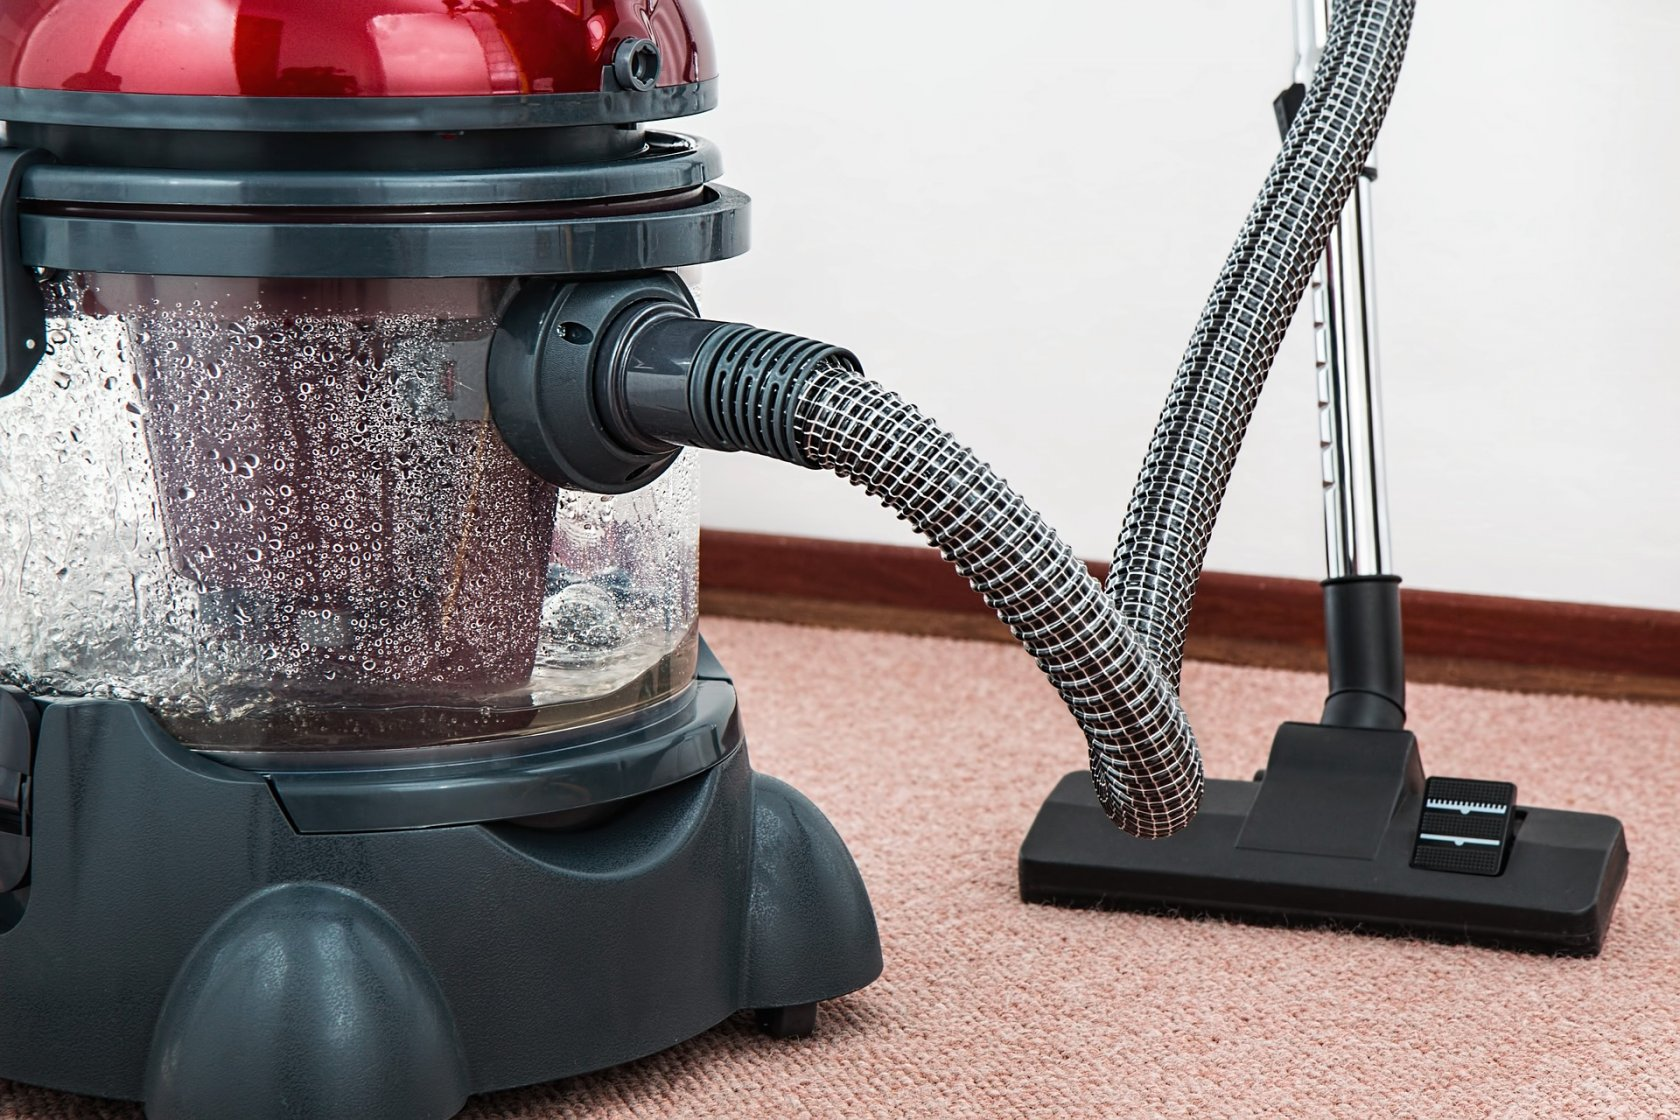 Things to Consider Before Purchasing a Vacuum Cleaner